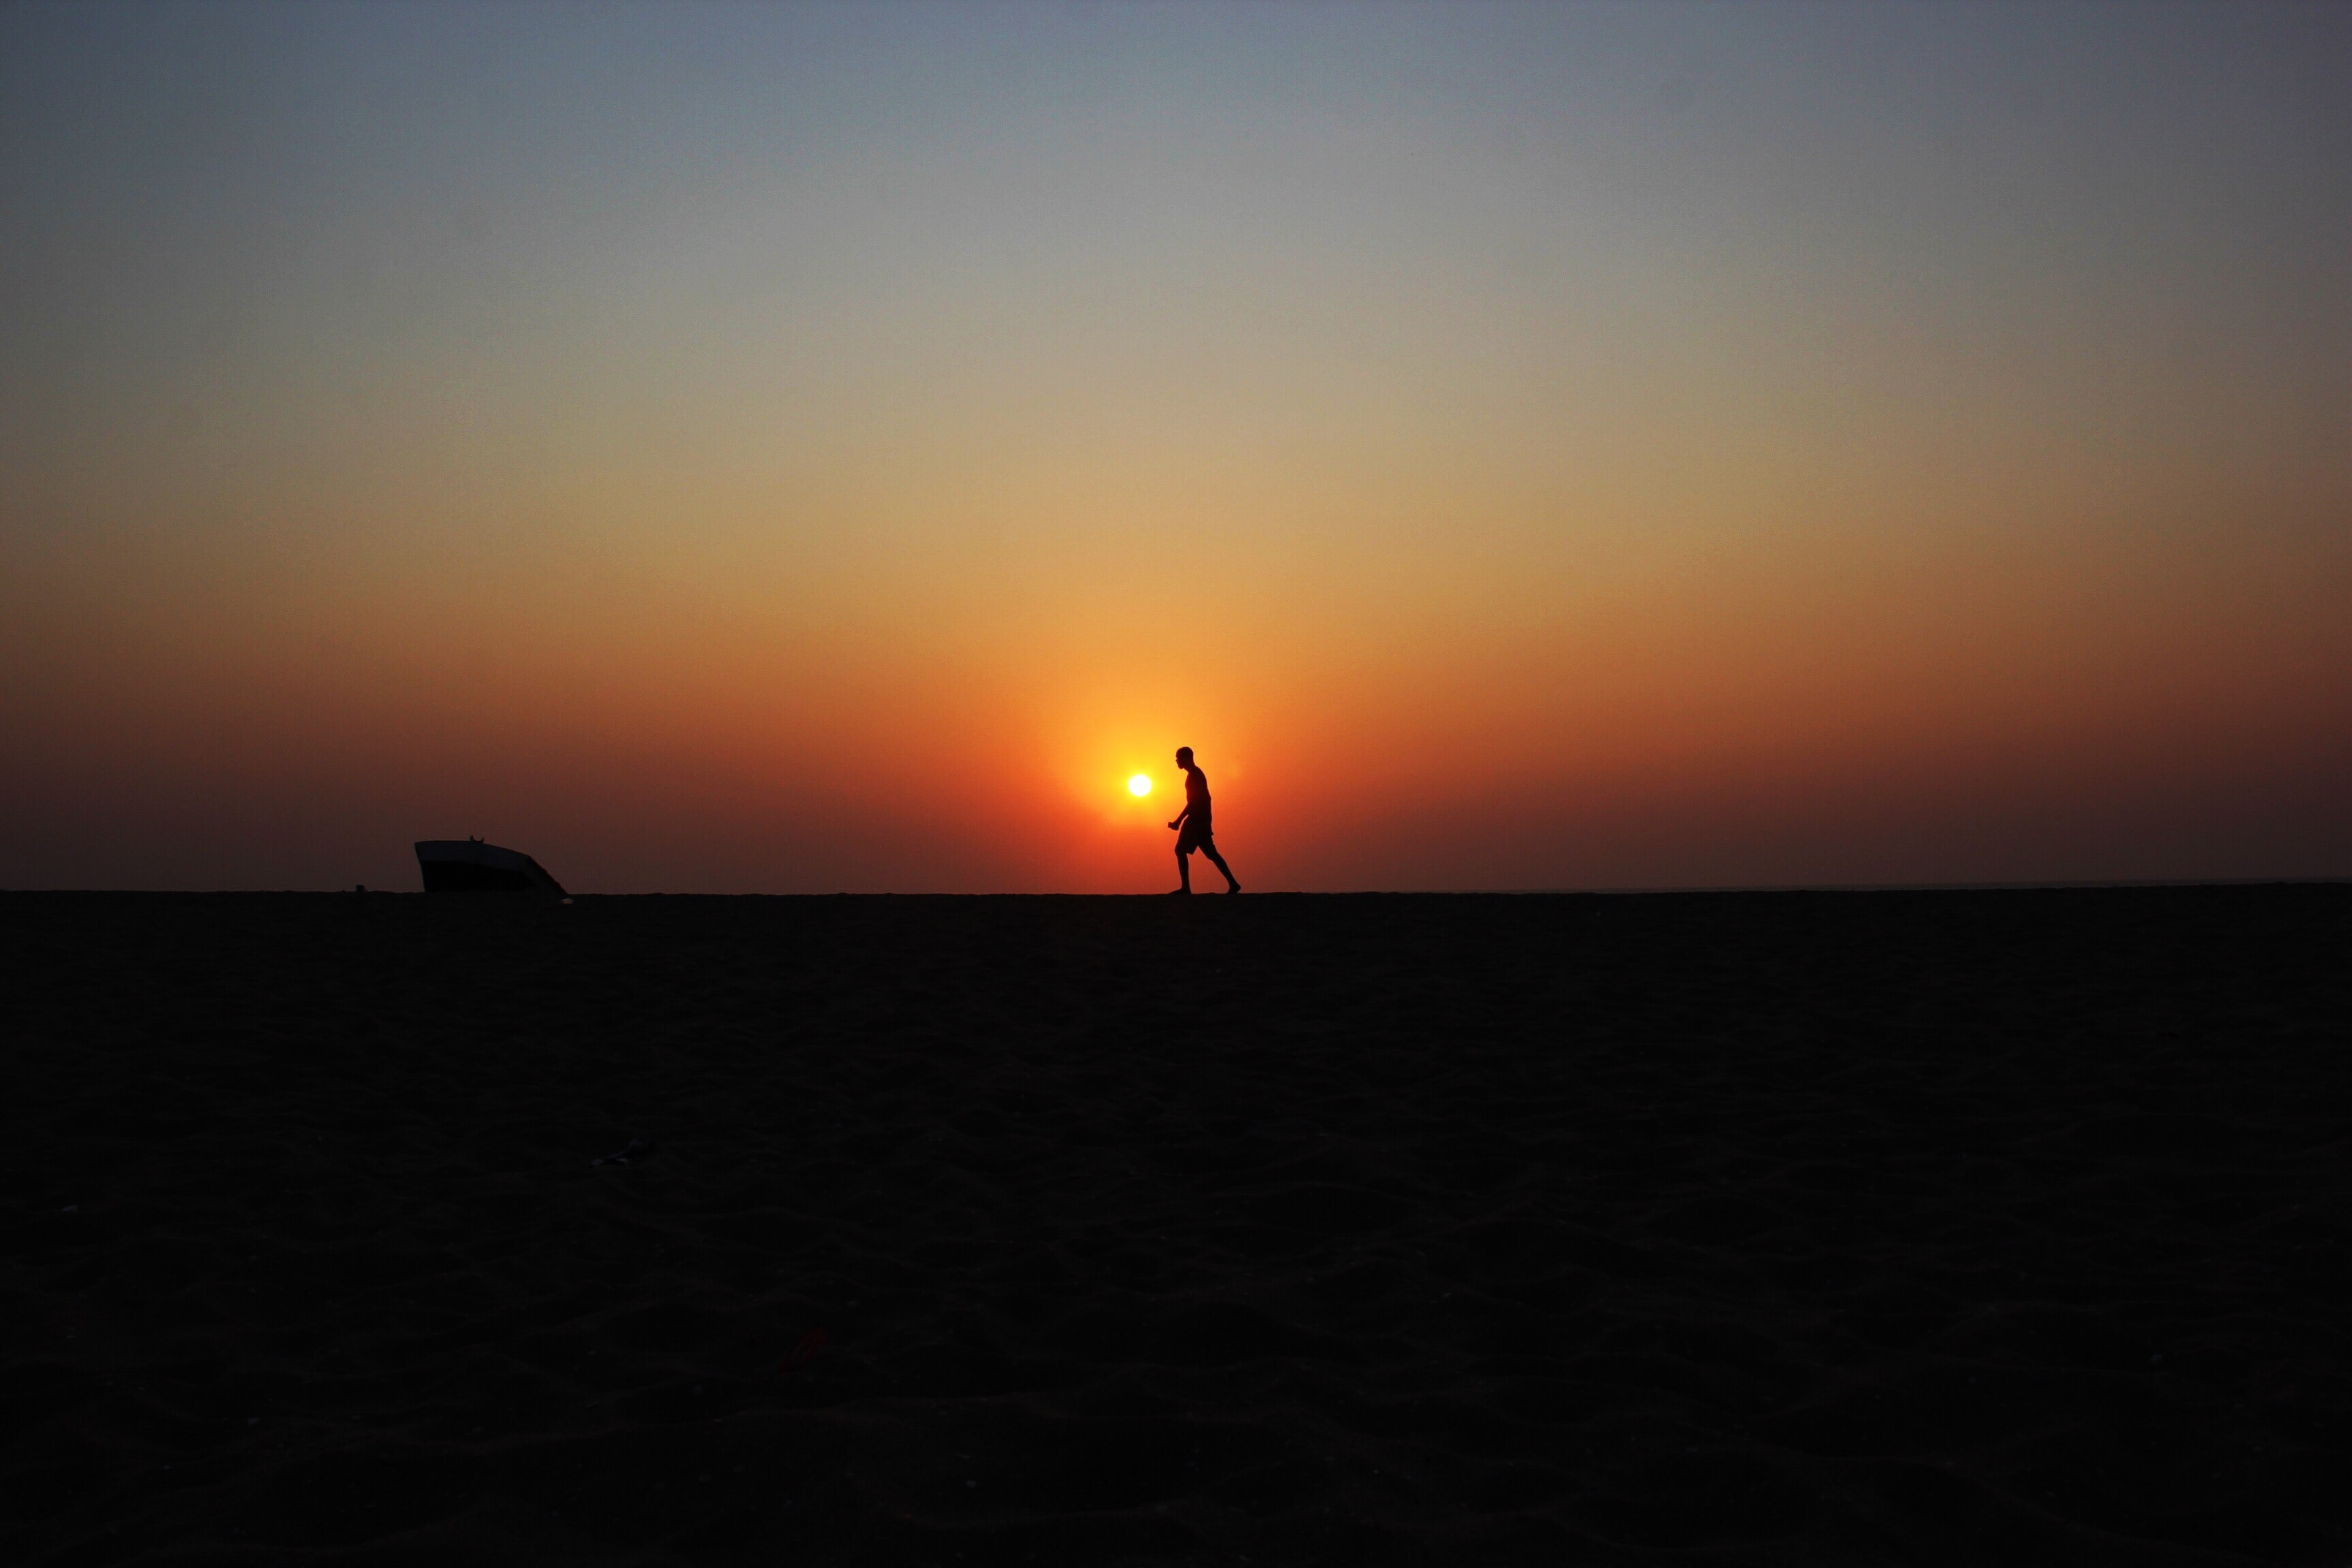 The silhouette of a man walking on the beach during sunset in Luanda